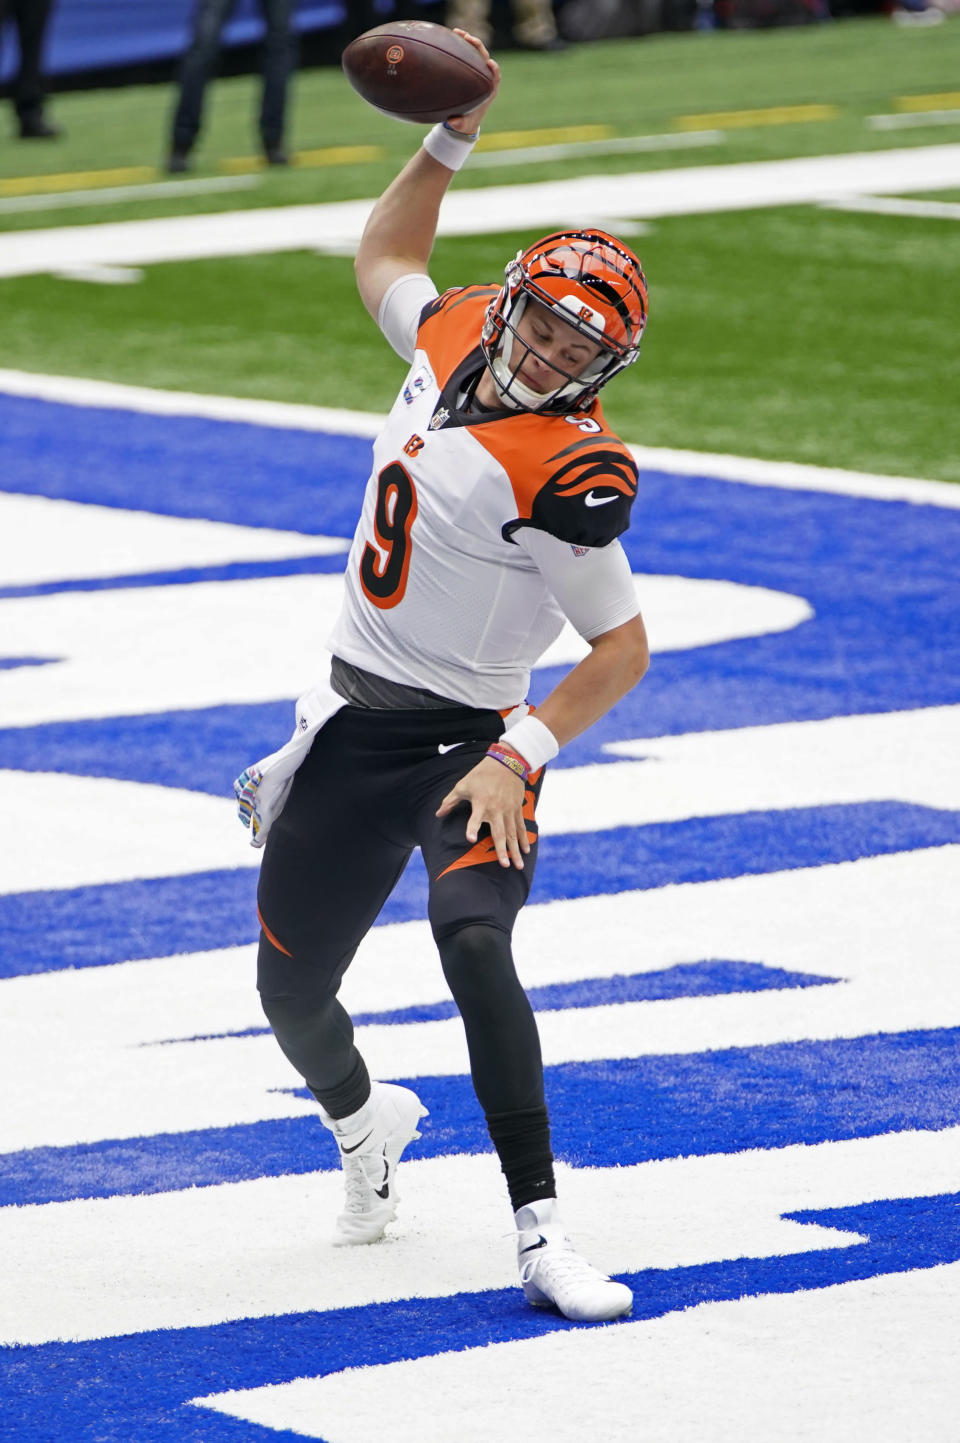 Cincinnati Bengals quarterback Joe Burrow (9) celebrates after rushing for a touchdown during the first half of an NFL football game against the Indianapolis Colts, Sunday, Oct. 18, 2020, in Indianapolis. (AP Photo/AJ Mast)